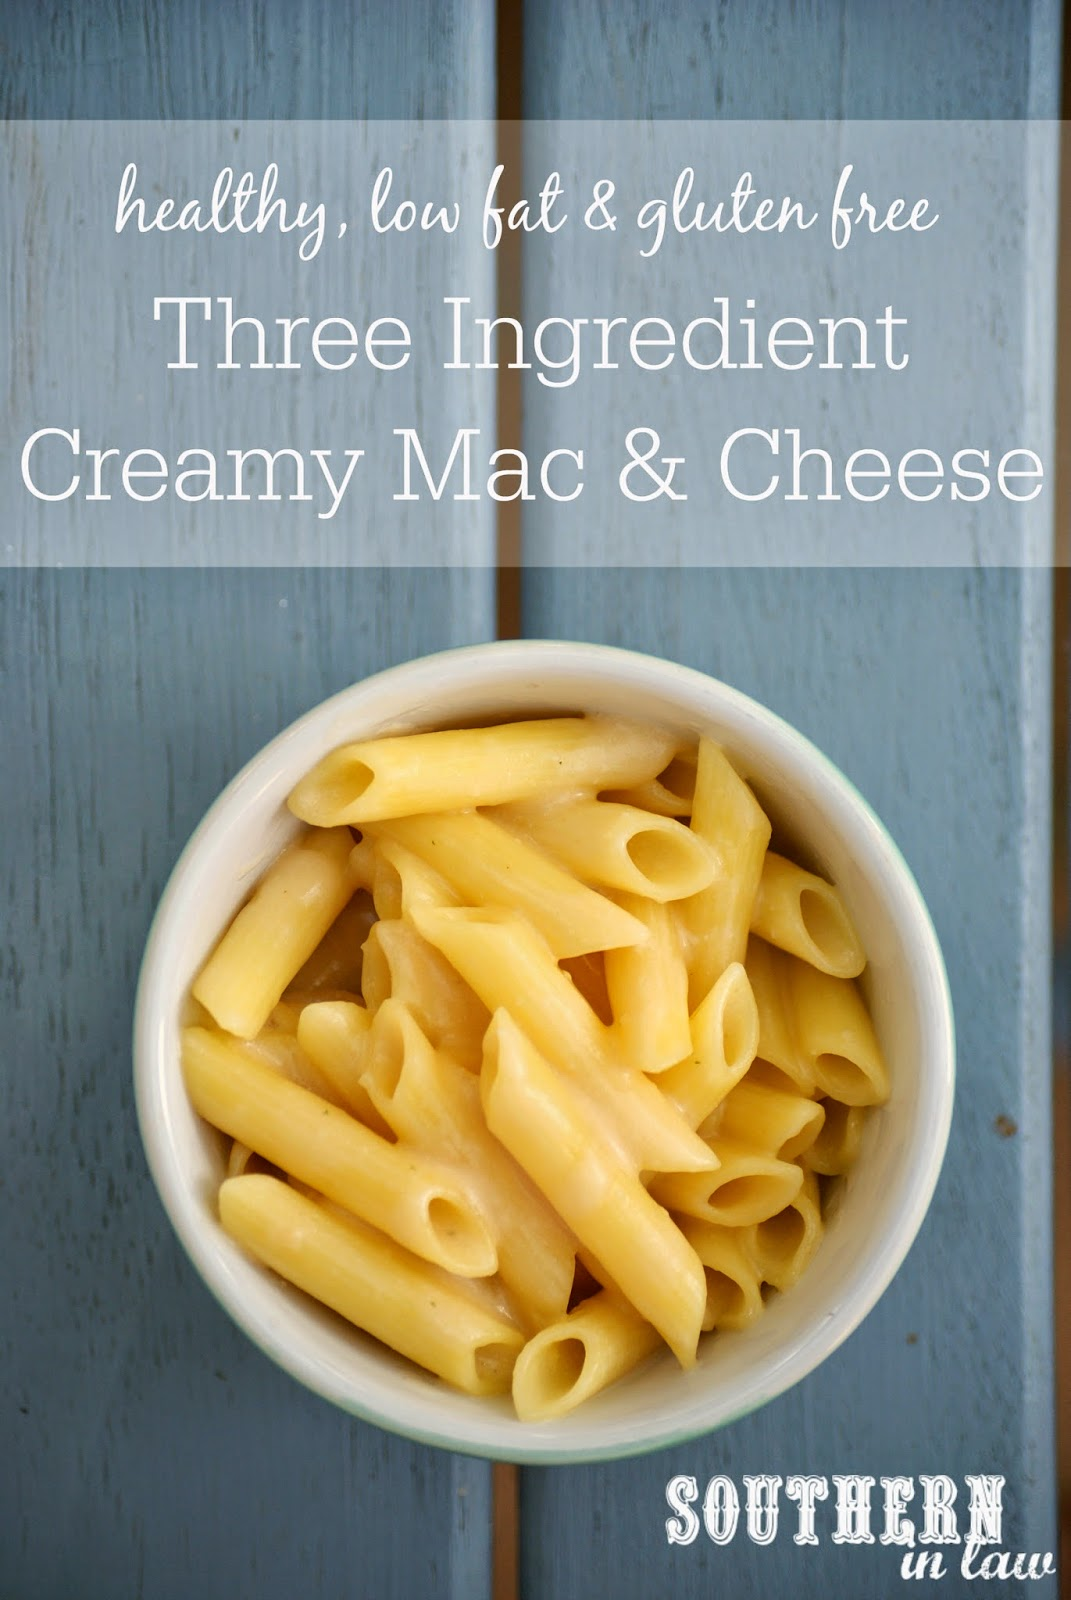 Healthy Three Ingredient Creamy Mac and Cheese Recipe - Healthy, low fat, gluten free, low calorie, dairy free